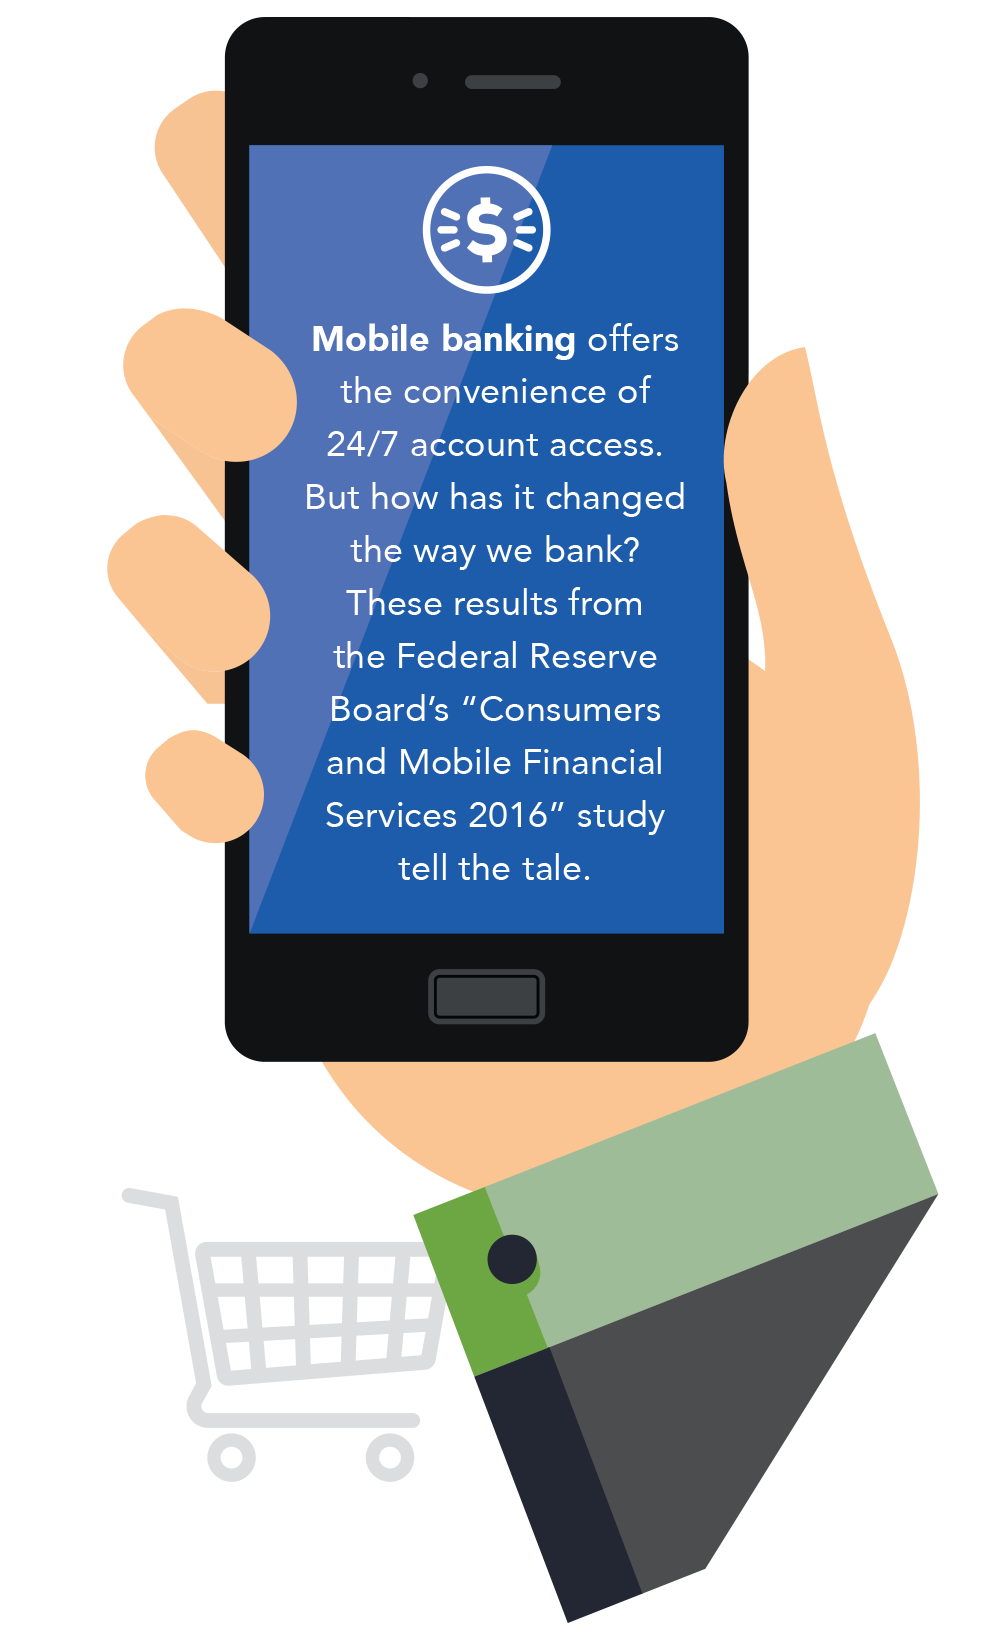 Hand holding phone that says: Mobile banking offers the convenience of 24/7 account access. But how has it changed the way we bank? These results from the Federal Reserve Board's Consumers and Mobile Financial Services 2016 study tell the tale.